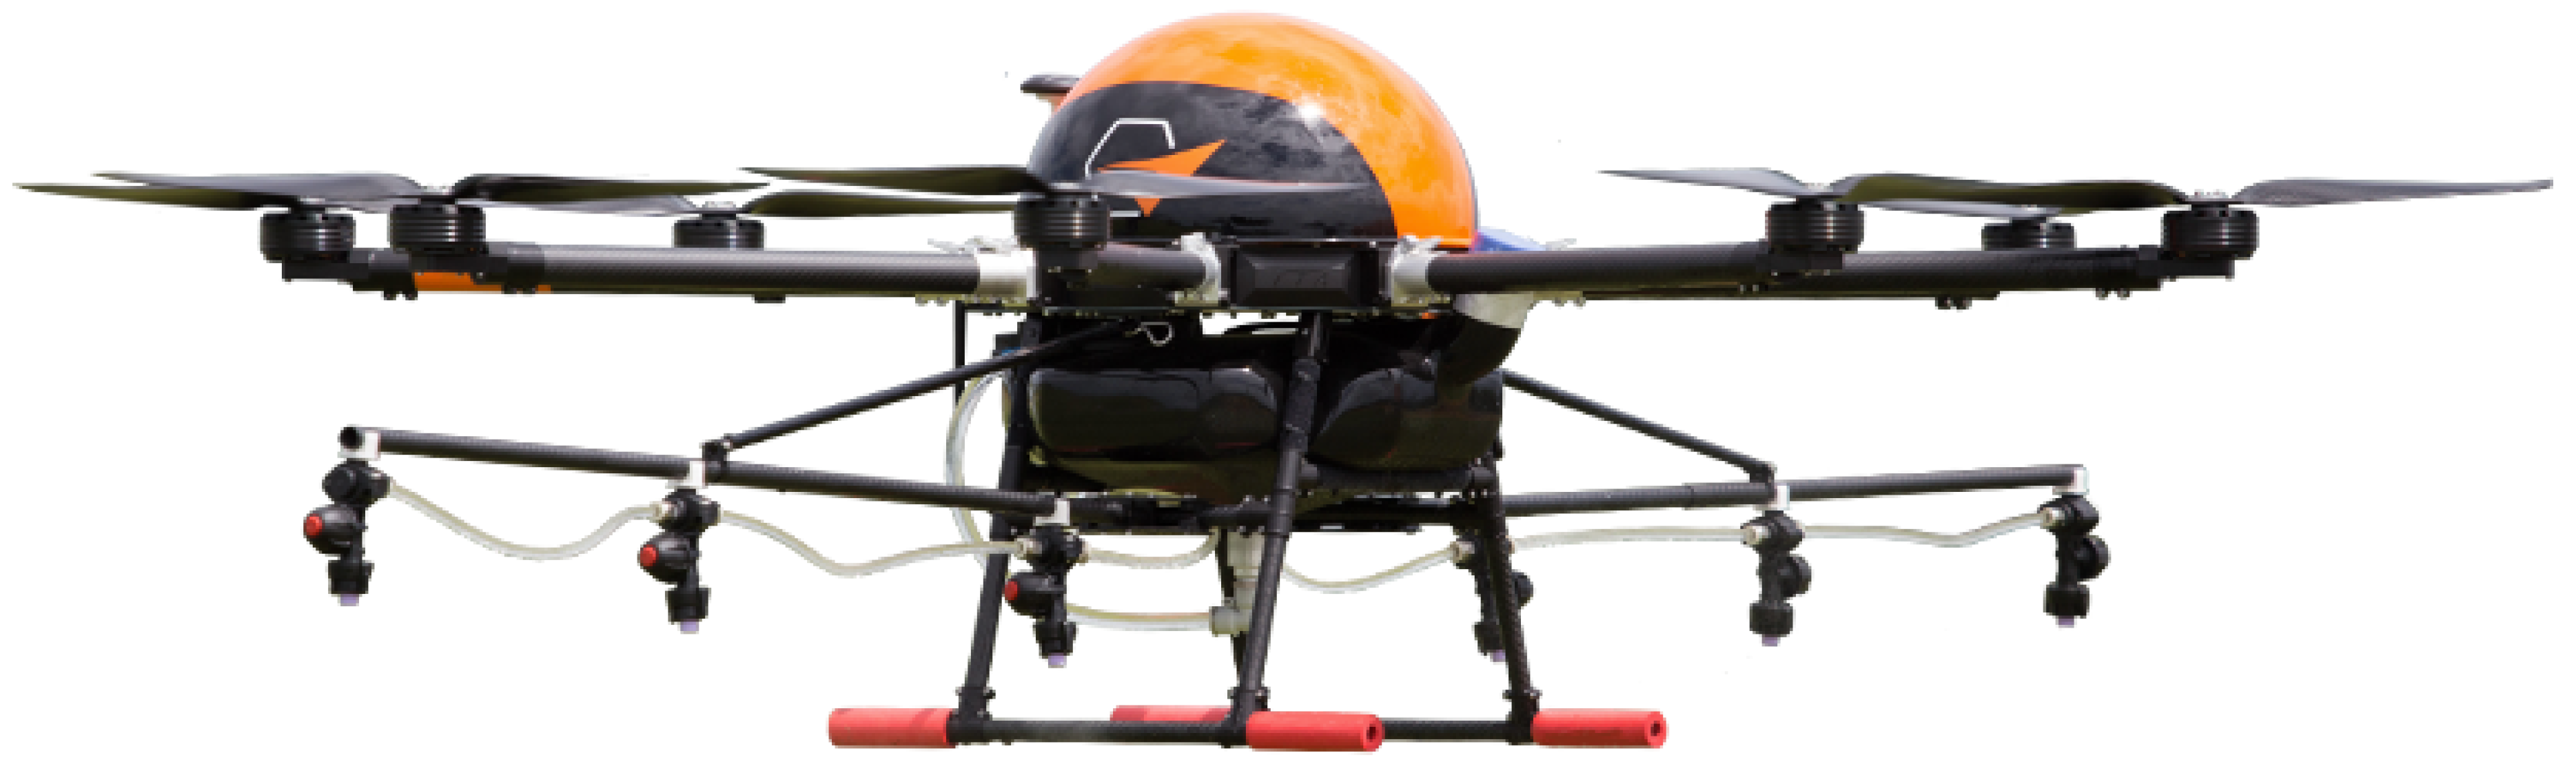 Drones | Free Full-Text | Evaluation of Altitude Sensors for a Crop